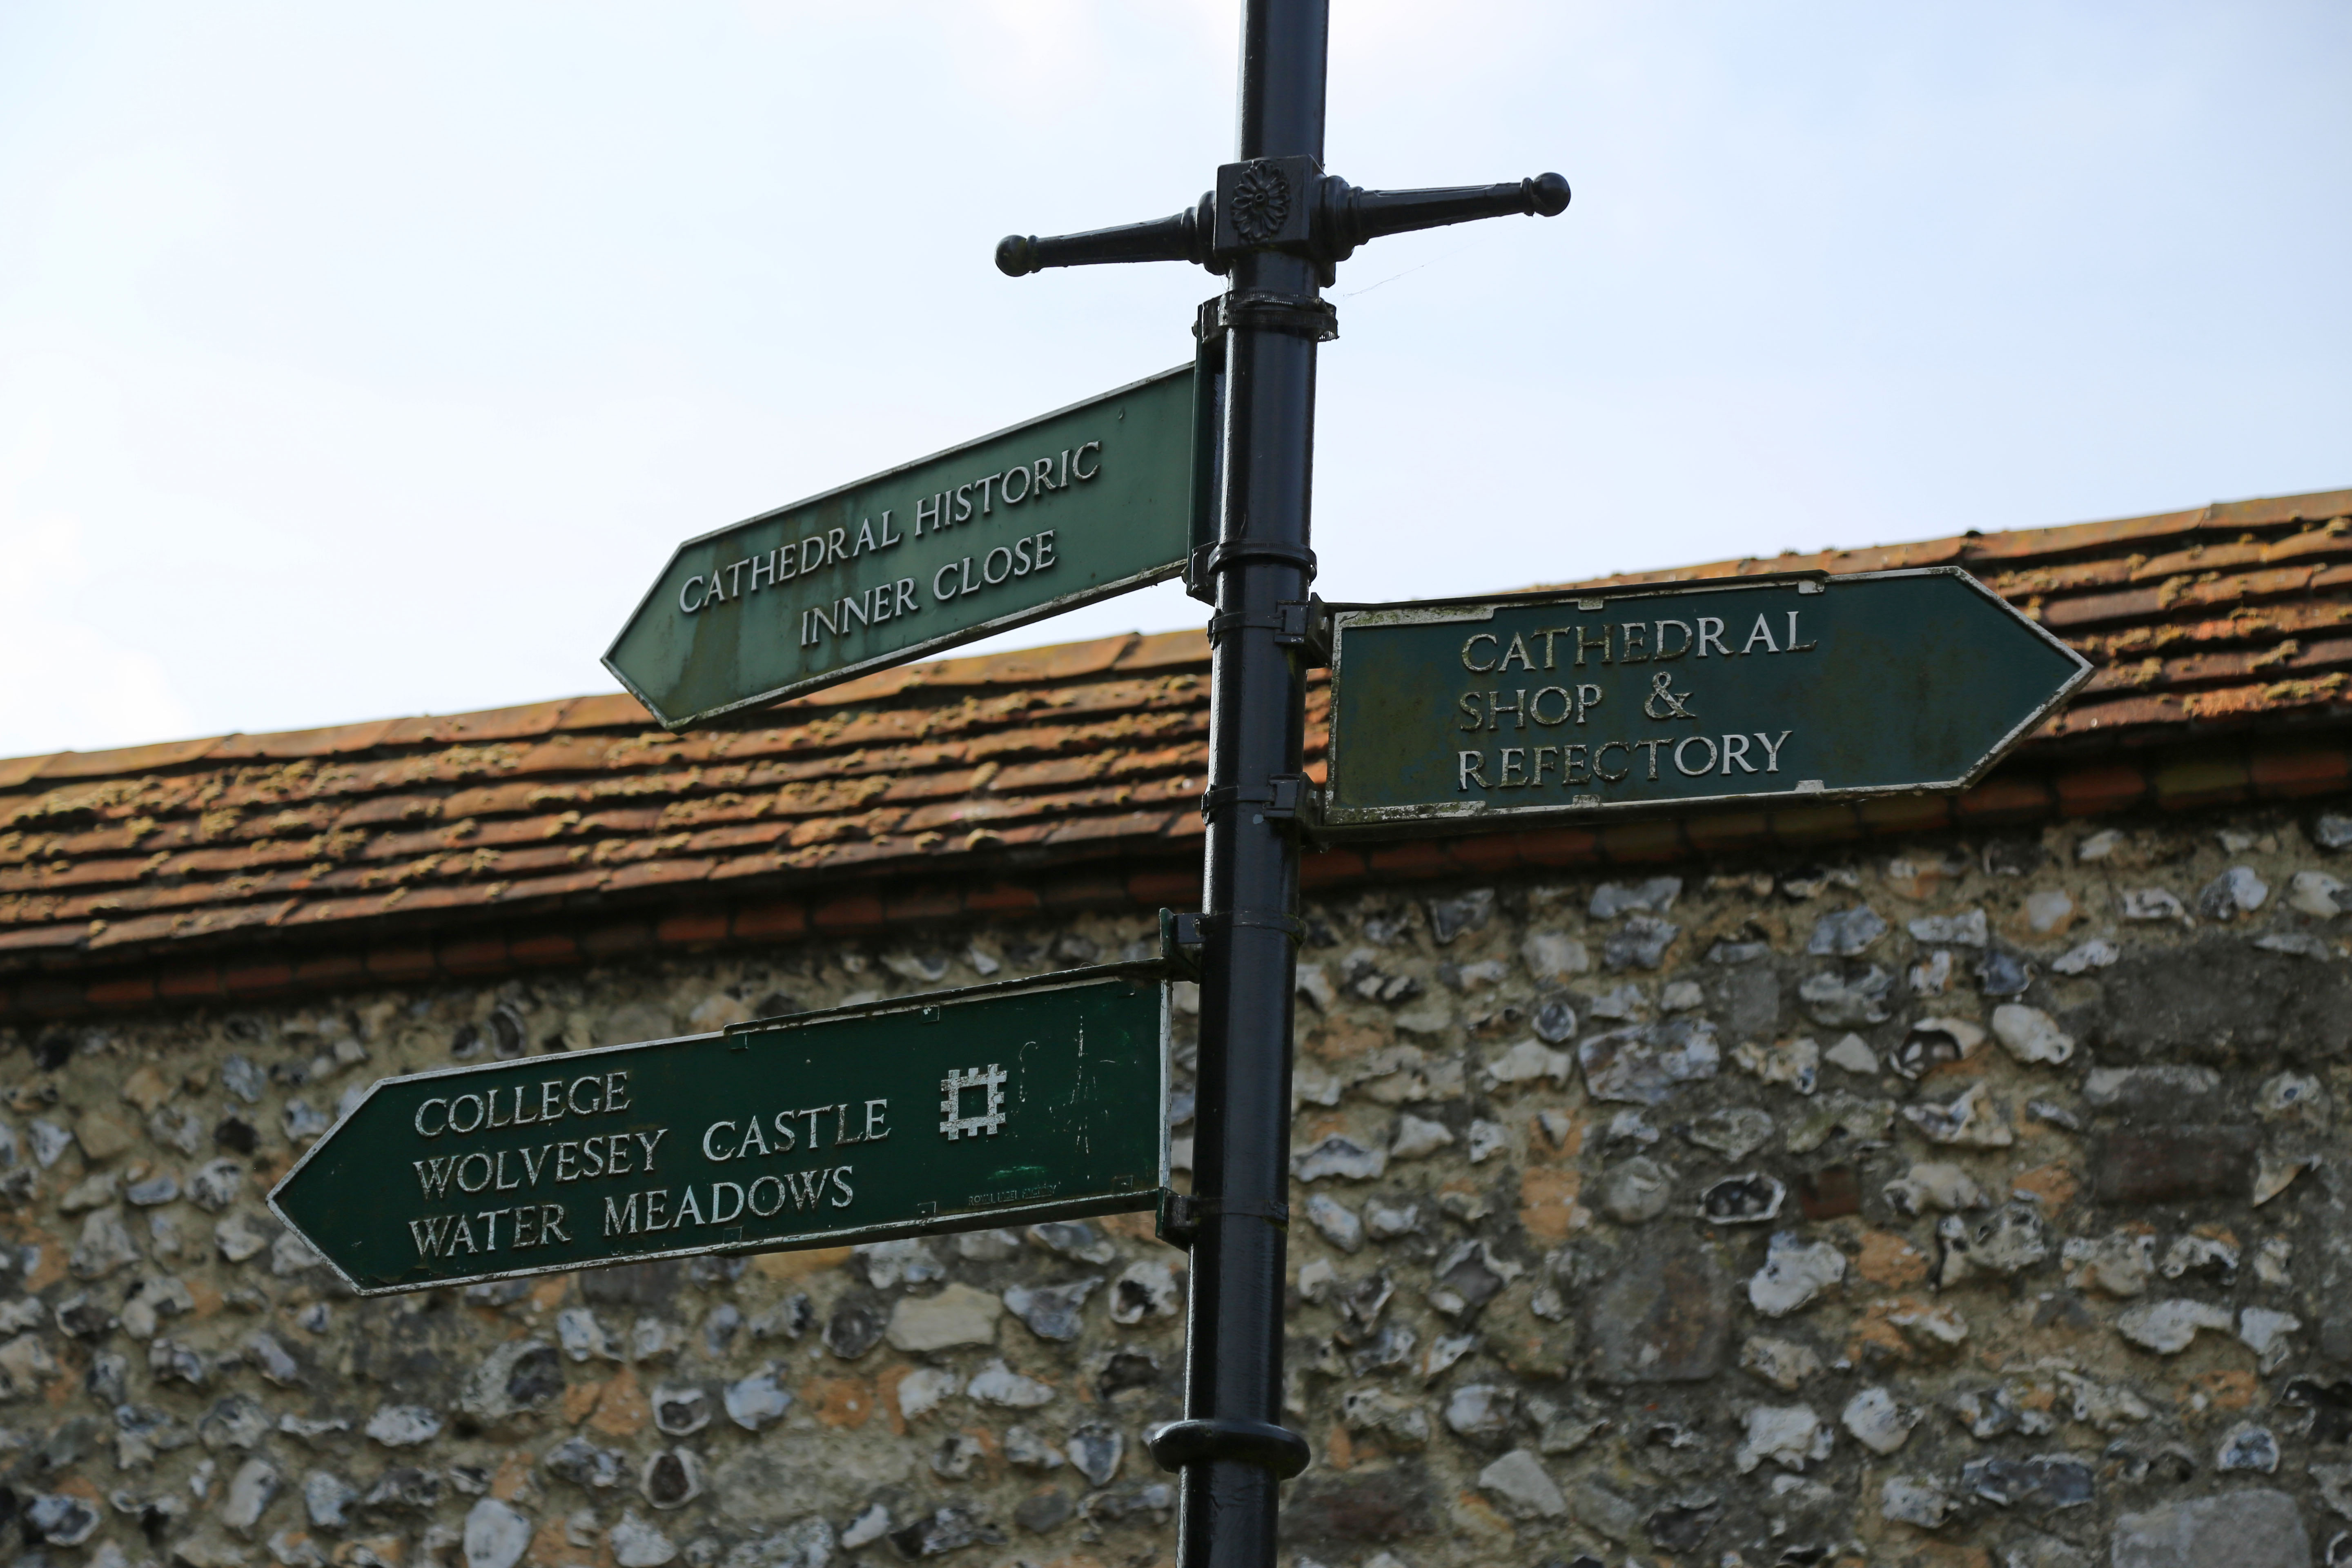 Three green signs pointing to various places around the catheral.